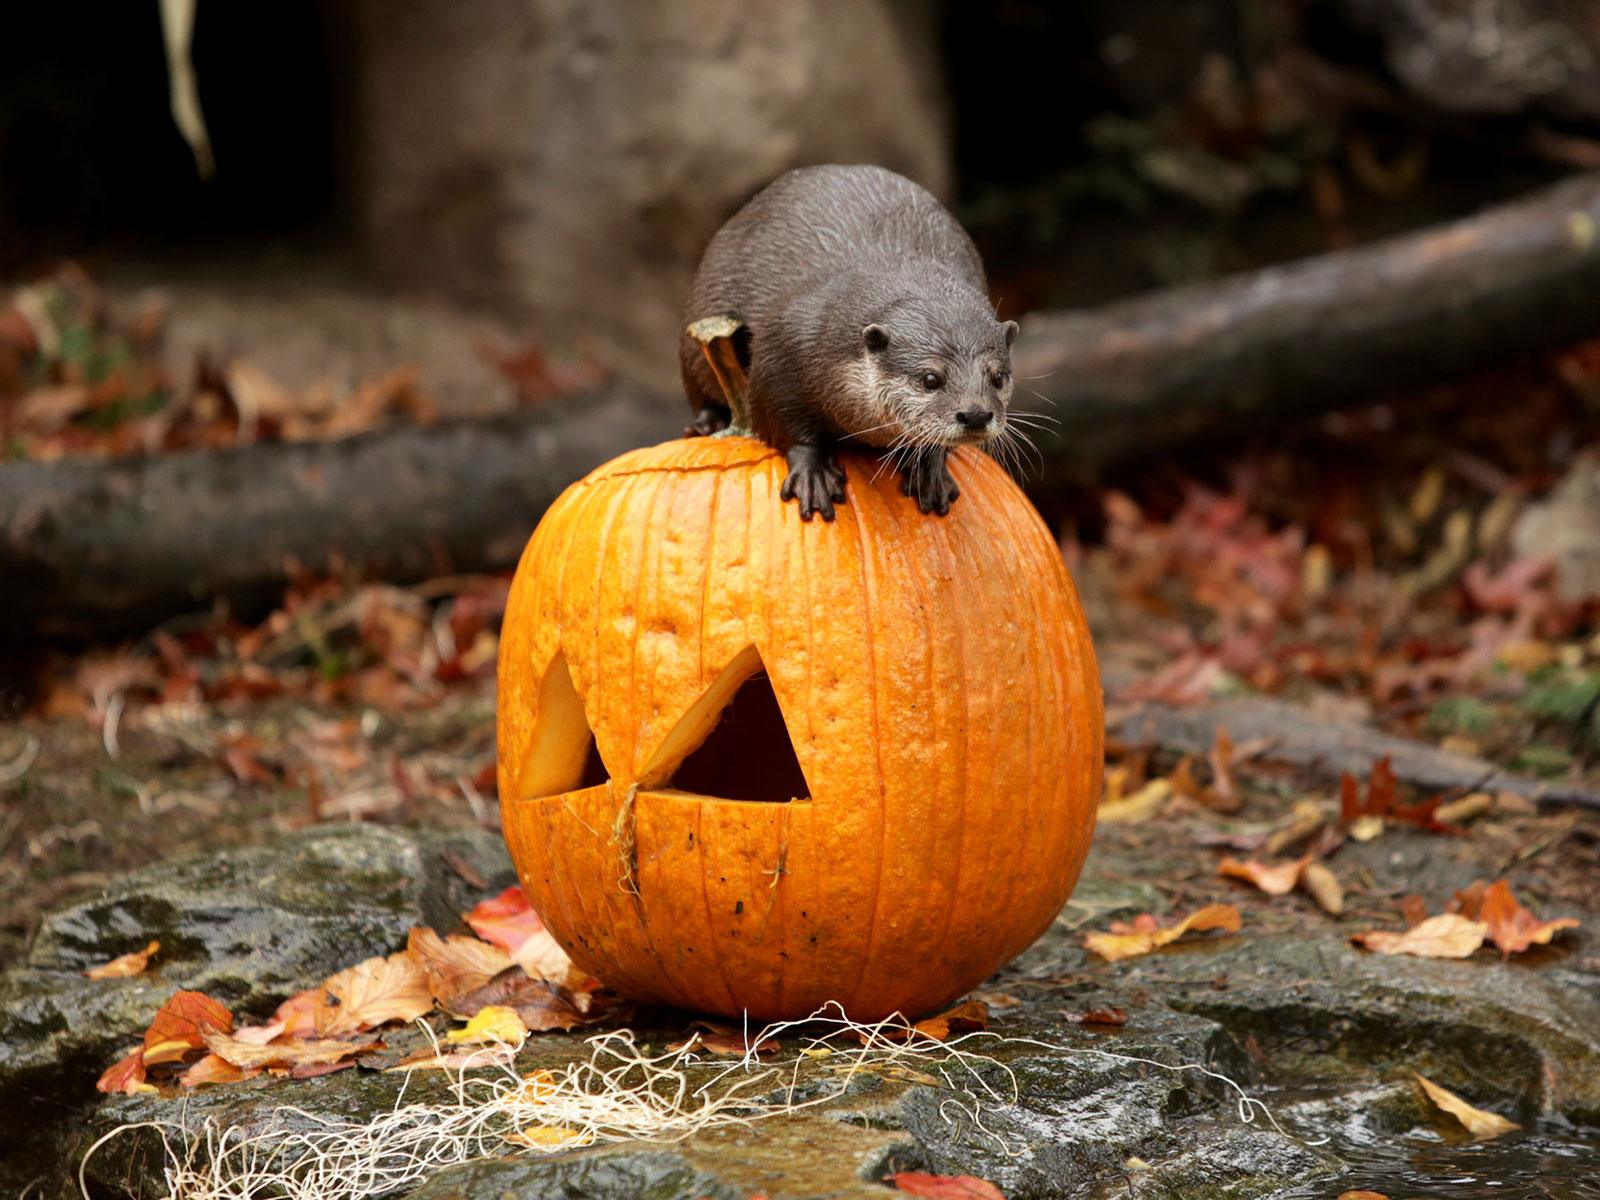 otter and a pumpkin